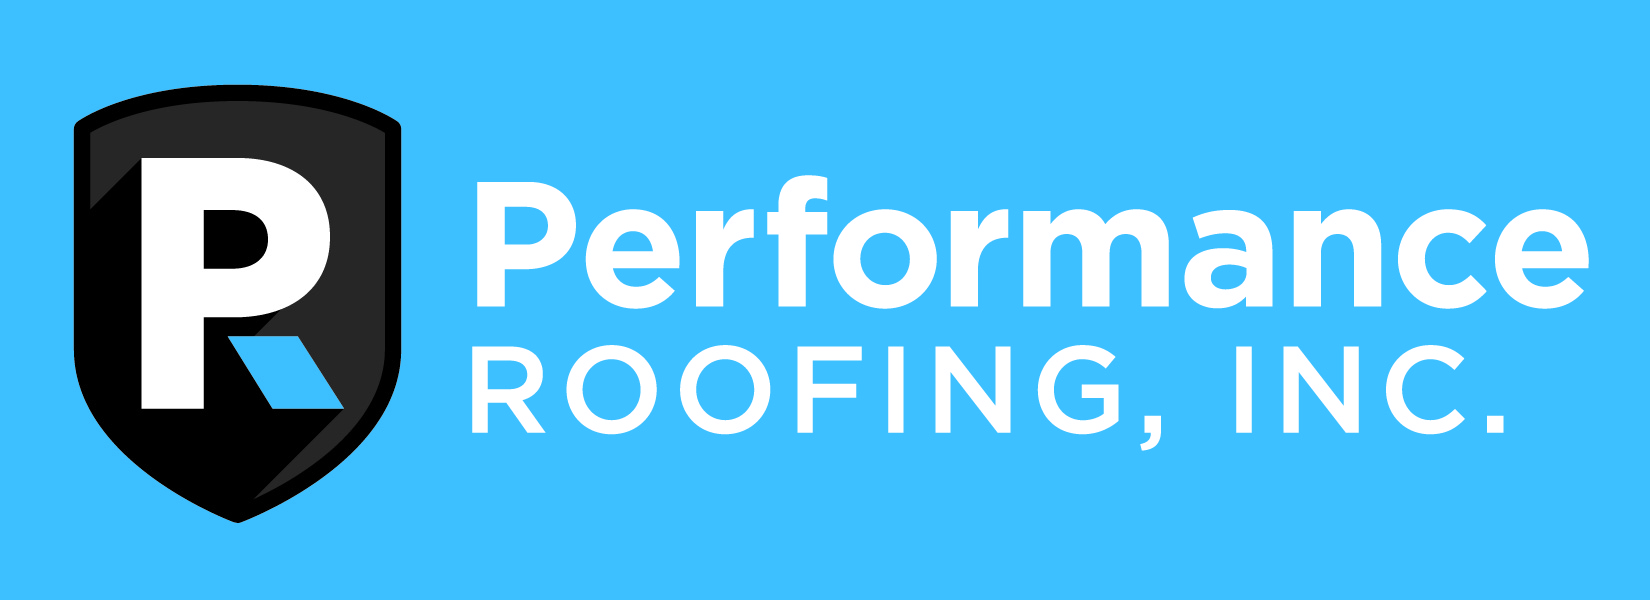 High Quality Performance Roofing Logo.